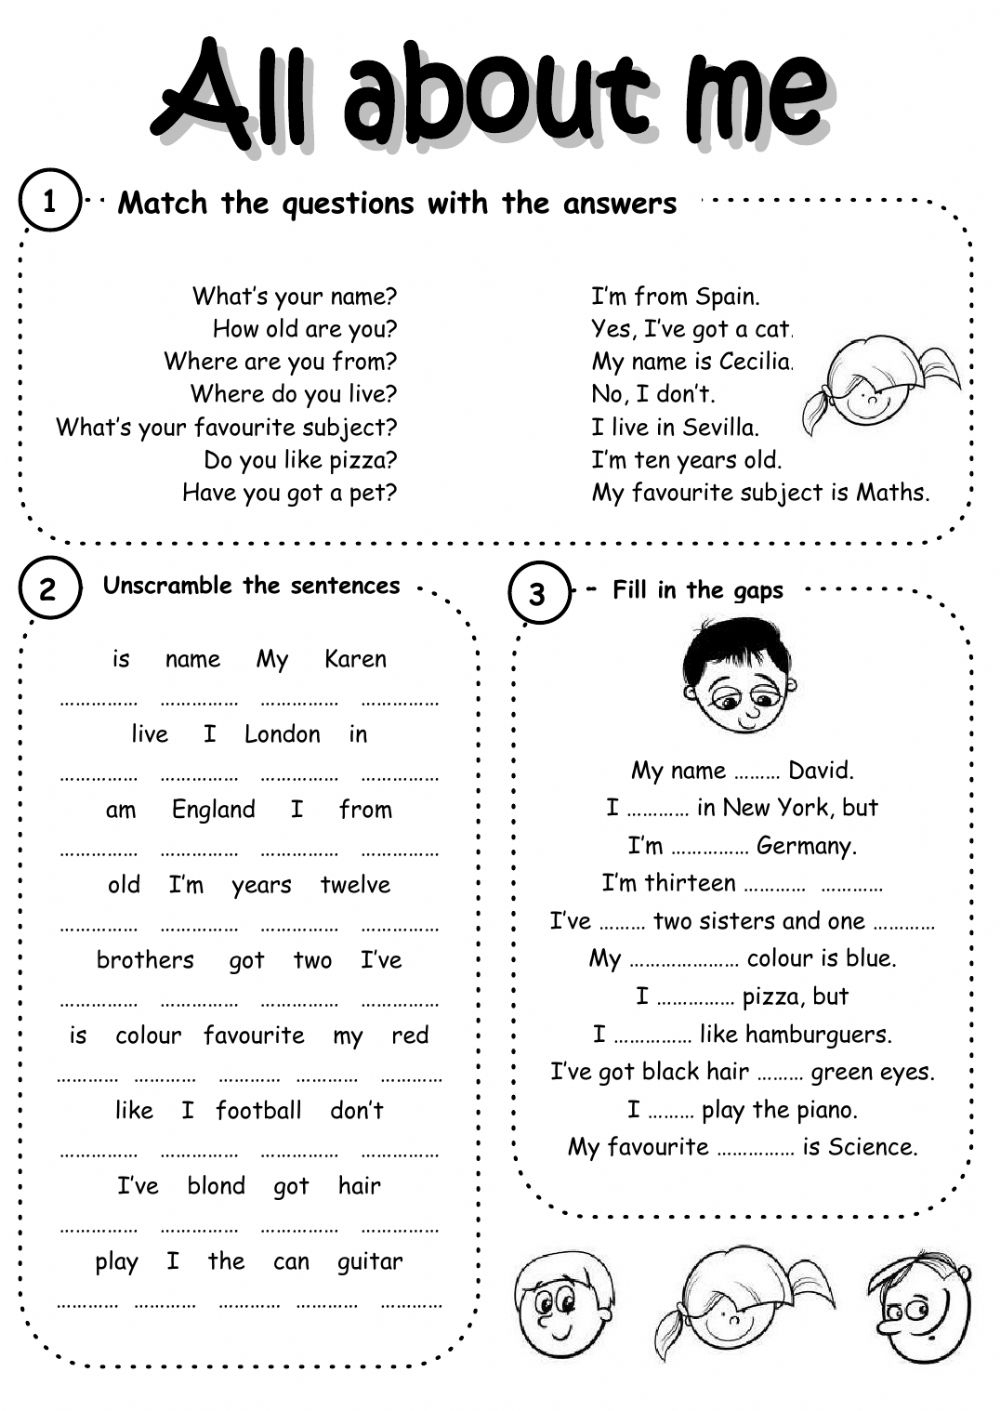 Introducing Yourself Interactive Worksheets | Introduce Yourself Printable Worksheets